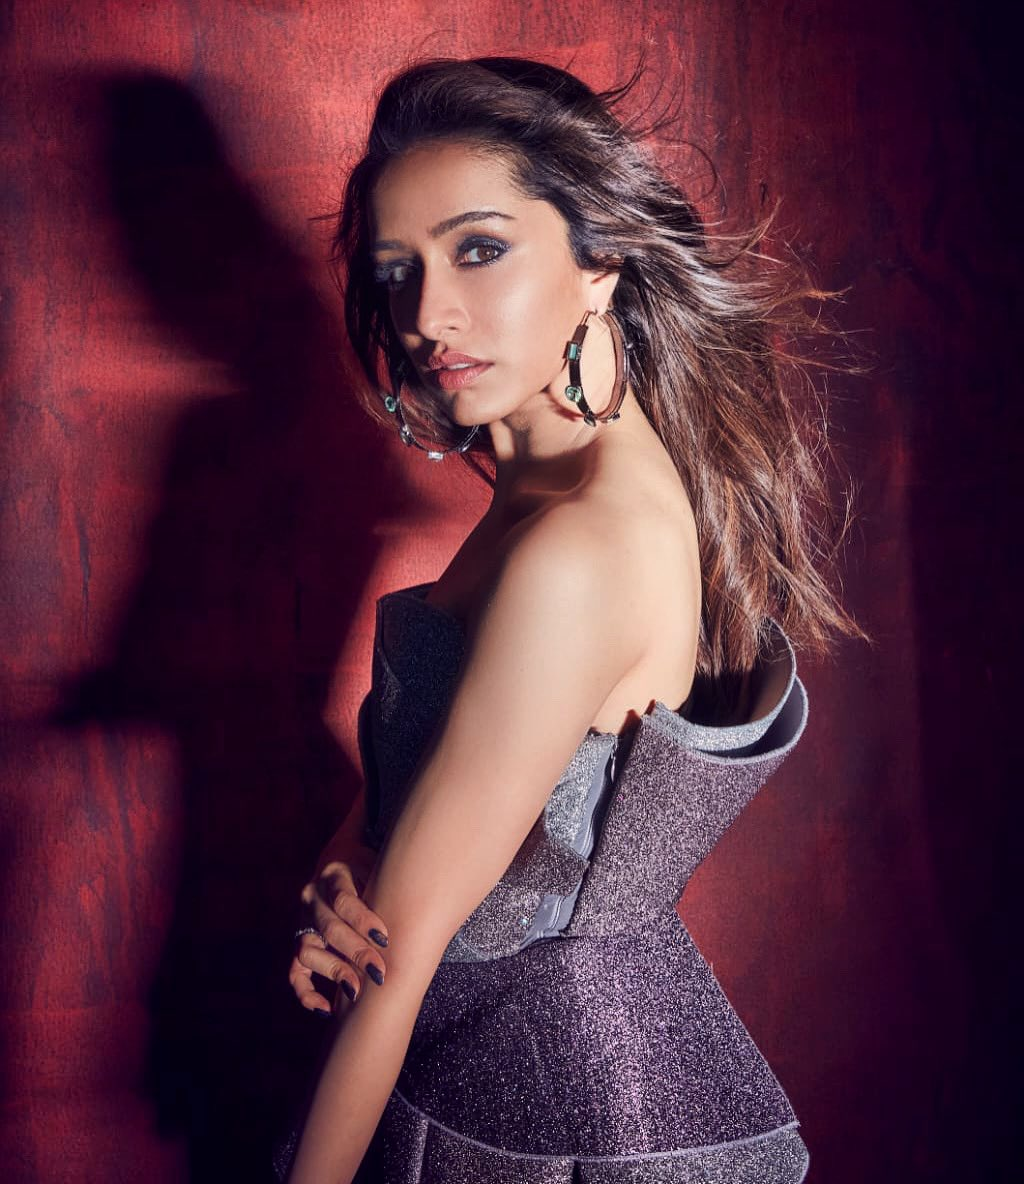 #ShraddhaKapoor to portray Ichhadhaari #Nagin in a film titled #Nagin, is designed as a trilogy, 3 film series. Directed by Vishal Furia. Produced by Nikhil Dwivedi.   #Bollywood #bollywoodactress #BollywoodNews @ShraddhaKapoor https://t.co/zipGOQreD6